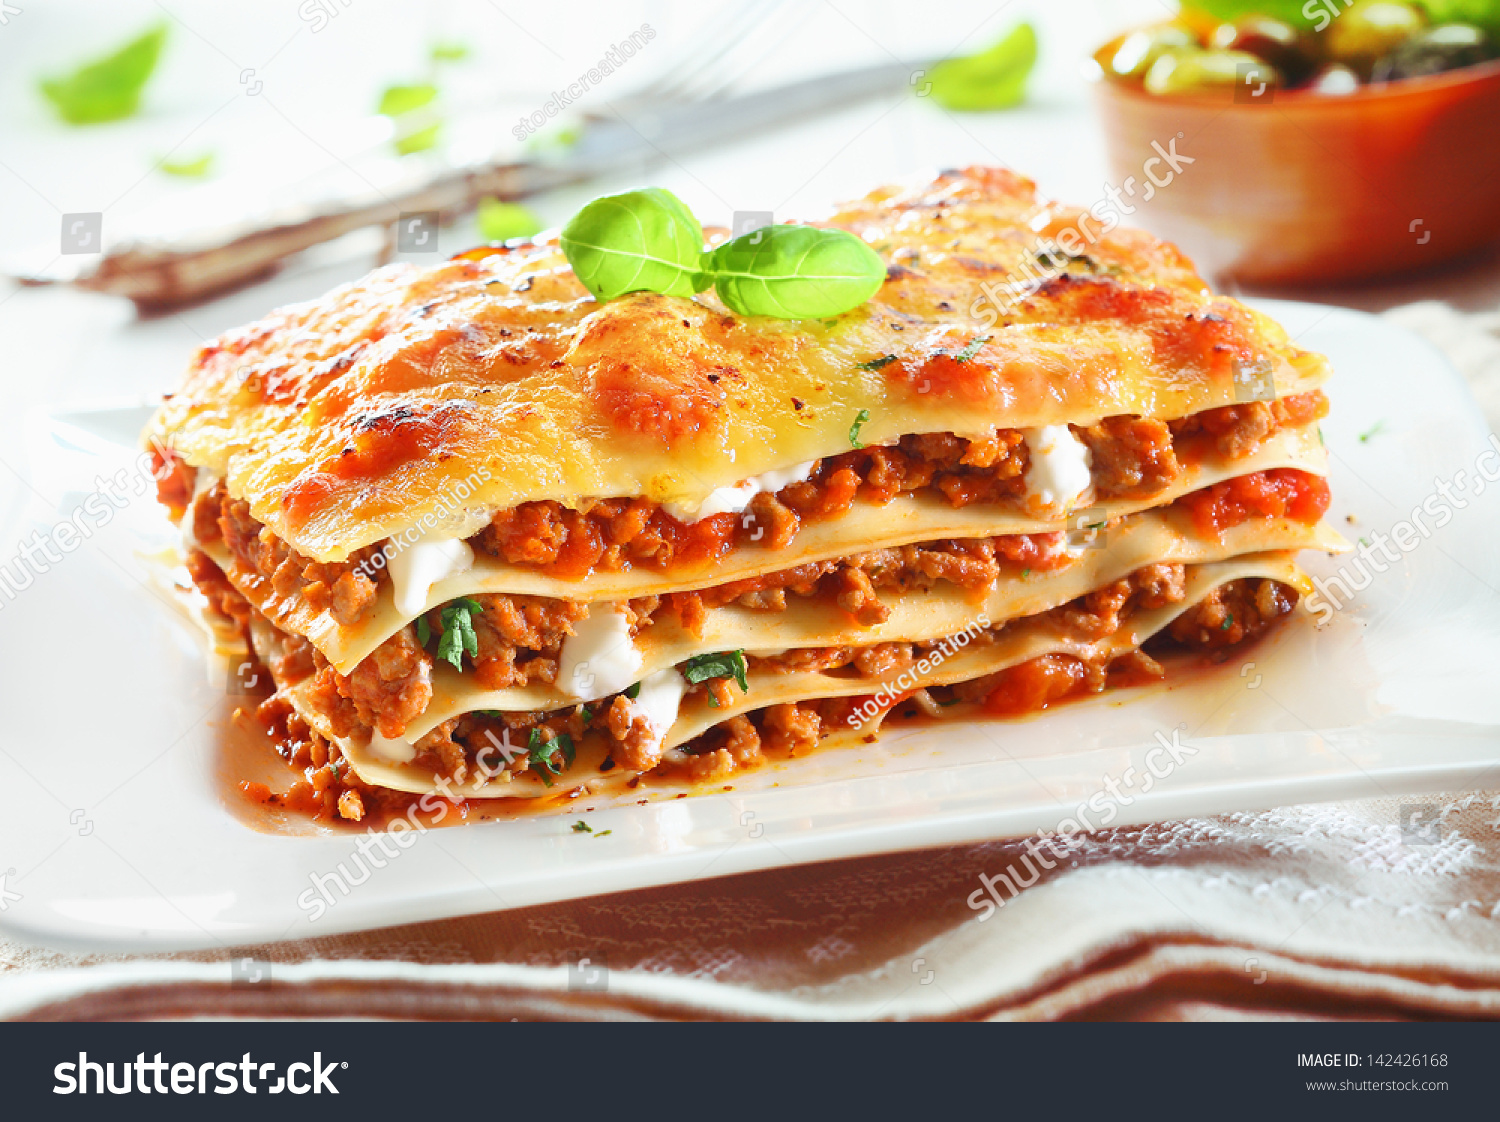 Close-Up Of A Traditional Lasagna Made With Minced Beef Bolognese Sauce Topped With Basil Leafs Served On A White Plate Stock Photo 142426168 ...